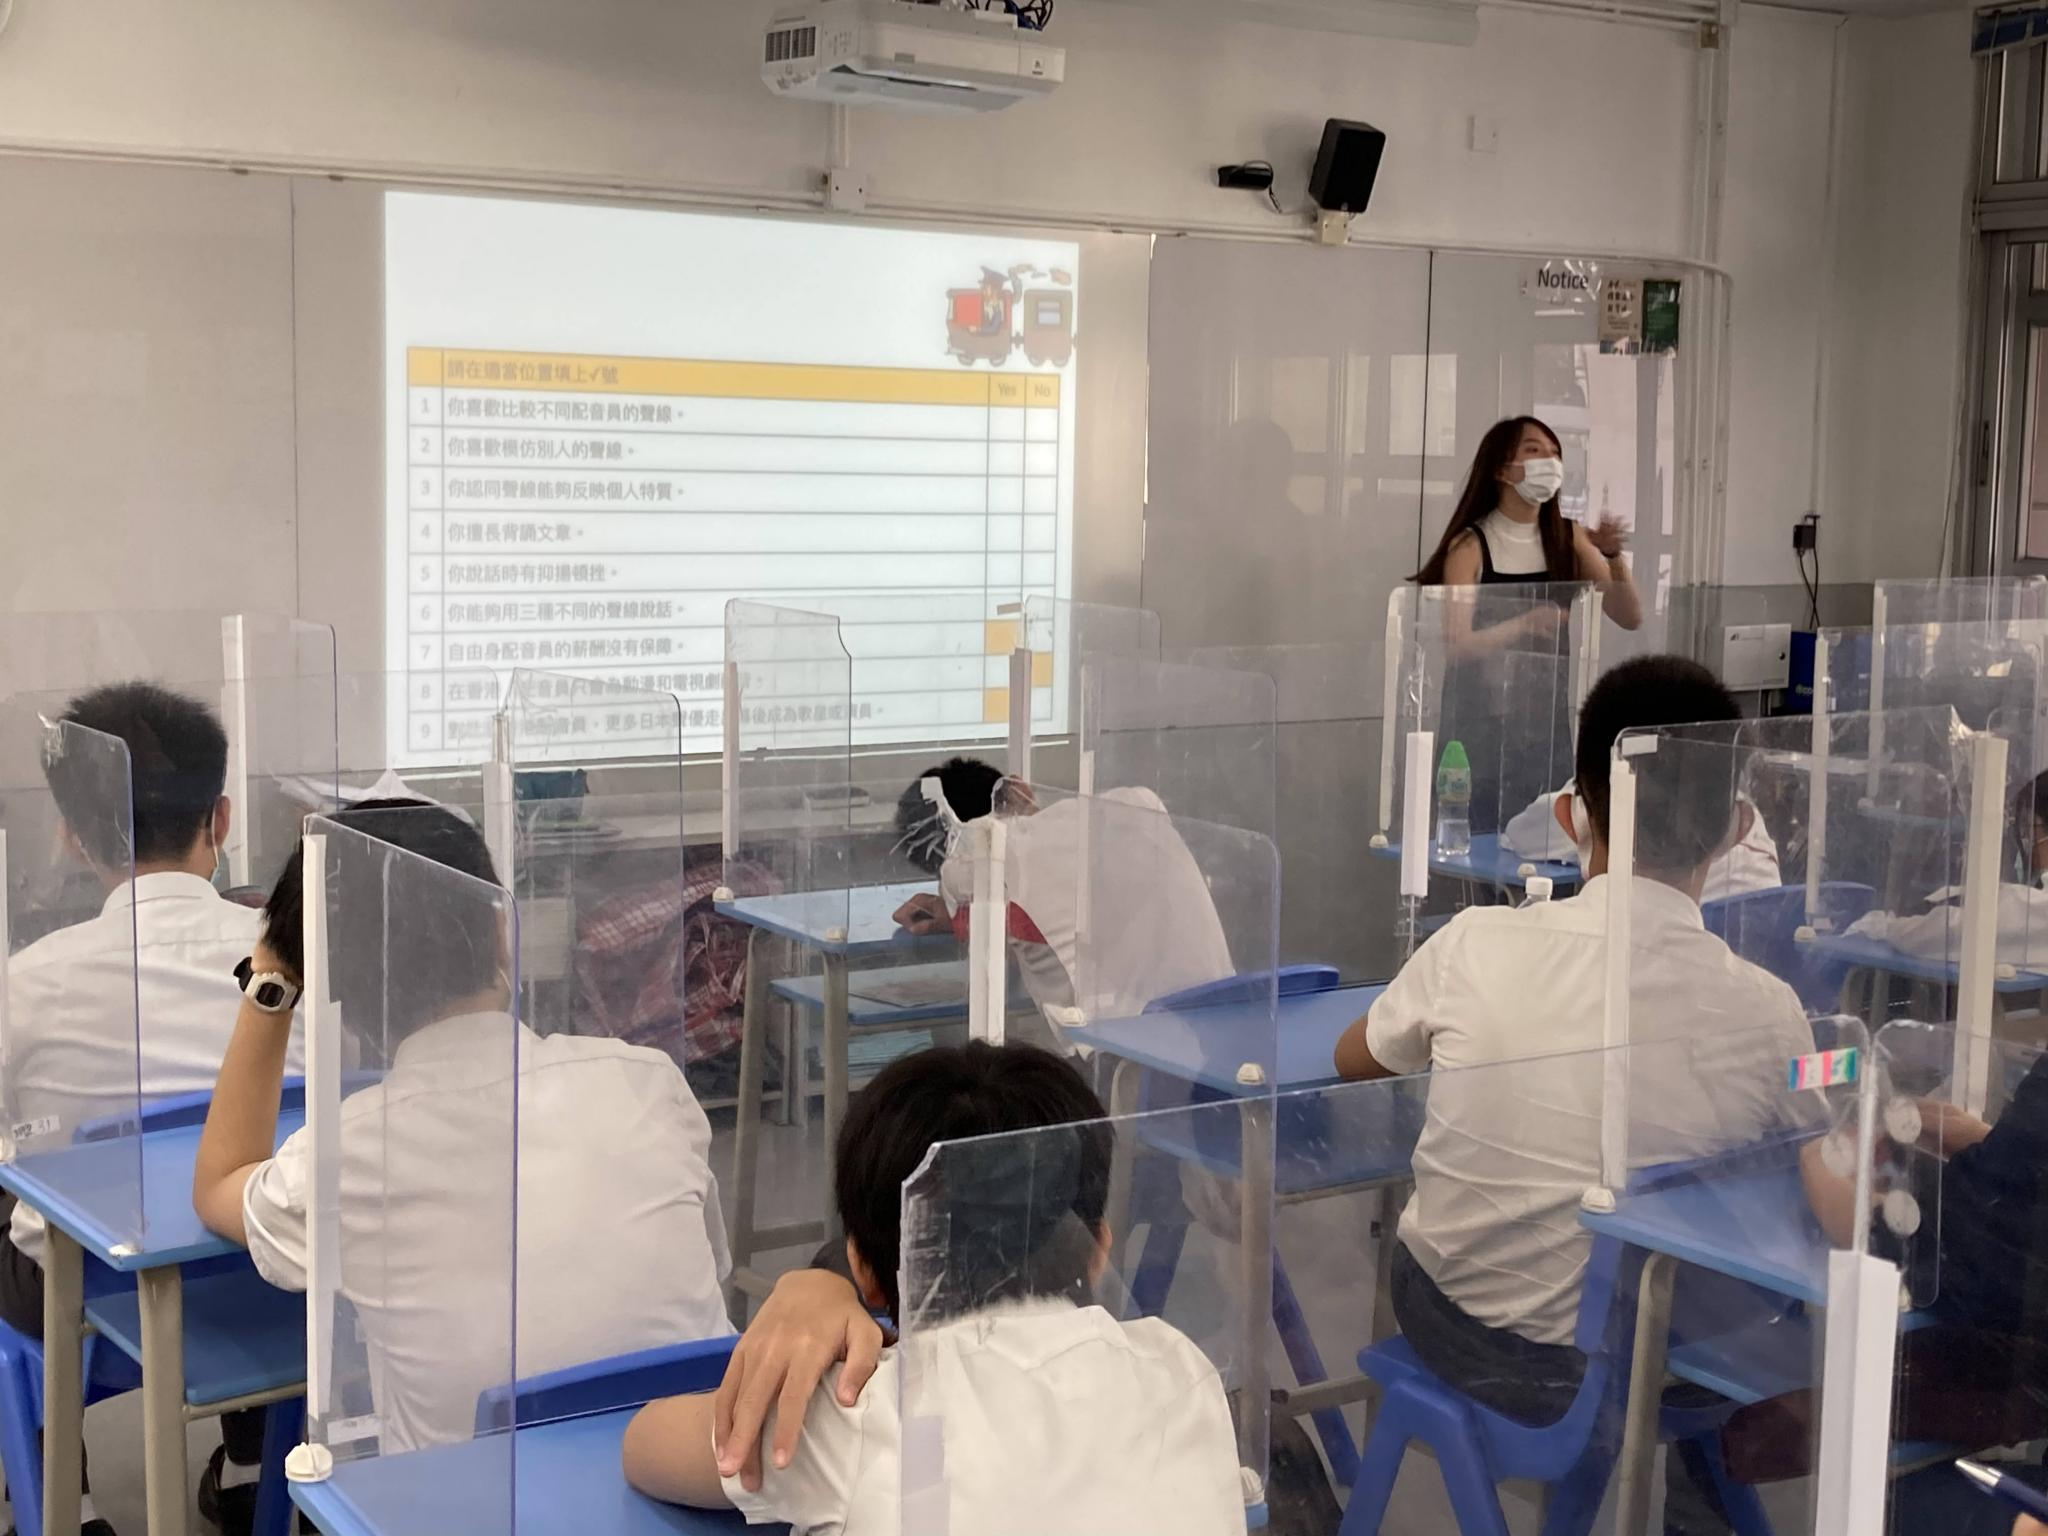 The instructor was teaching students how to be a dubbing artist.